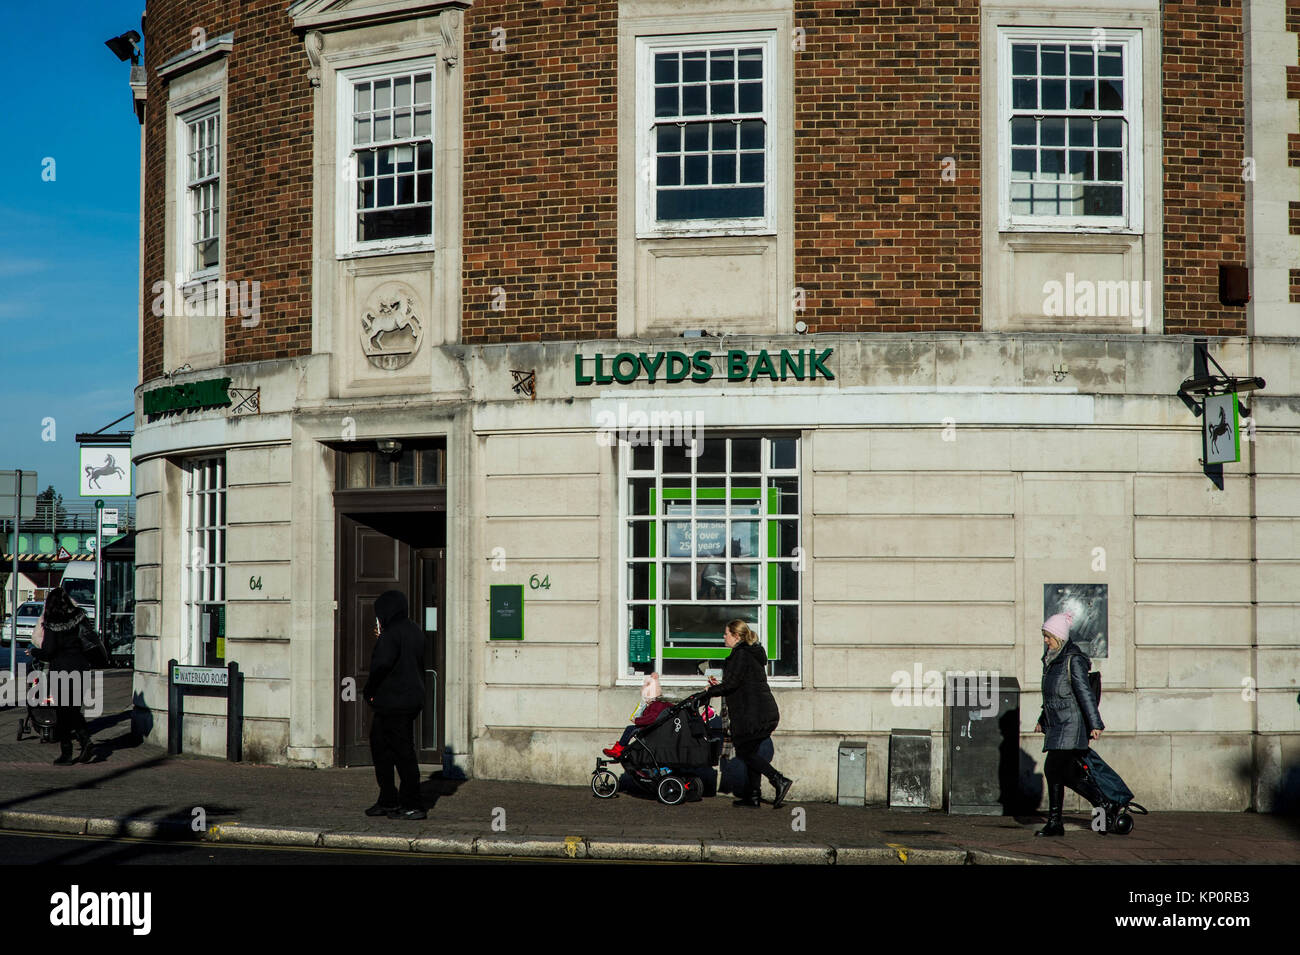 Lloyds Bank High Street Branch Retail Outlet - Stock Image